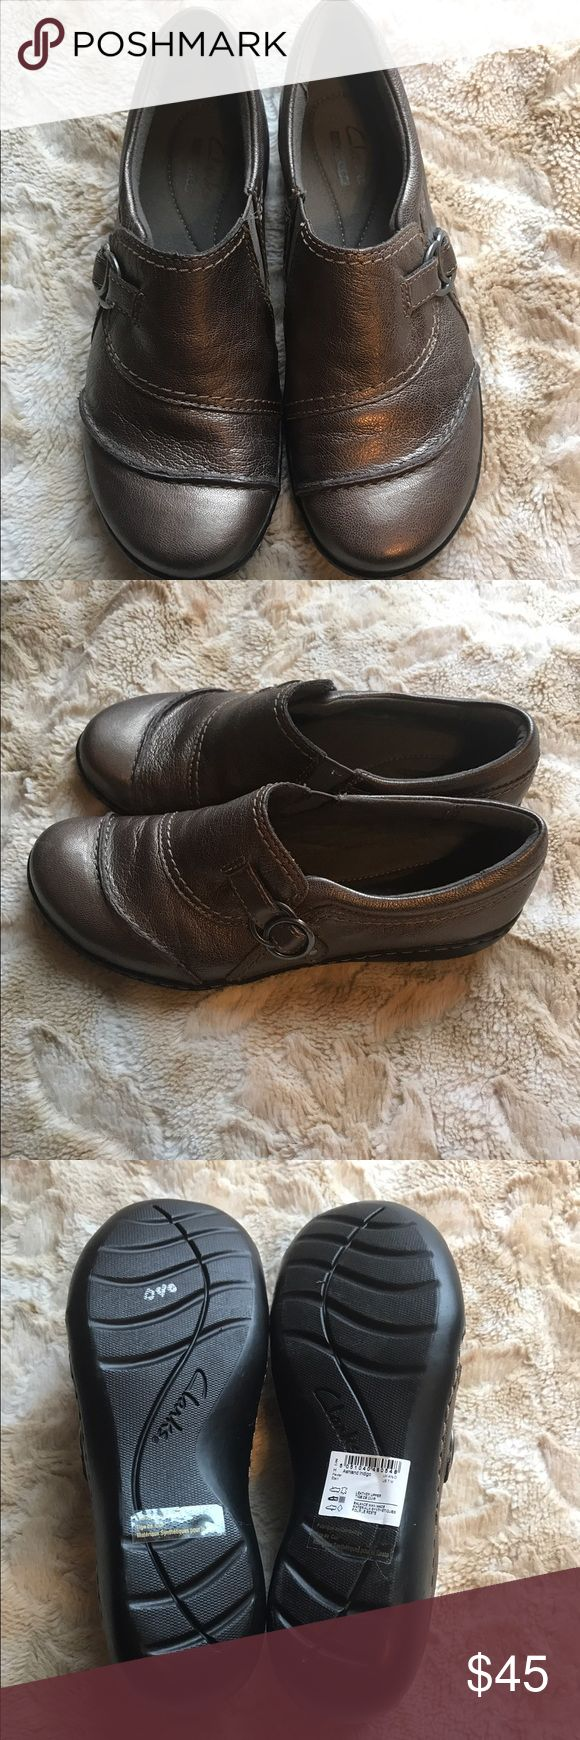 Clarks Ashland Indigo Shoe Clarks size 7 Ashland Indigo slip on shoe/clog. Leather Upper. Never worn. Brand new, flawless condition. Foam type insole, fashionable buckle on side. Clarks Collection Clarks Shoes Mules & Clogs